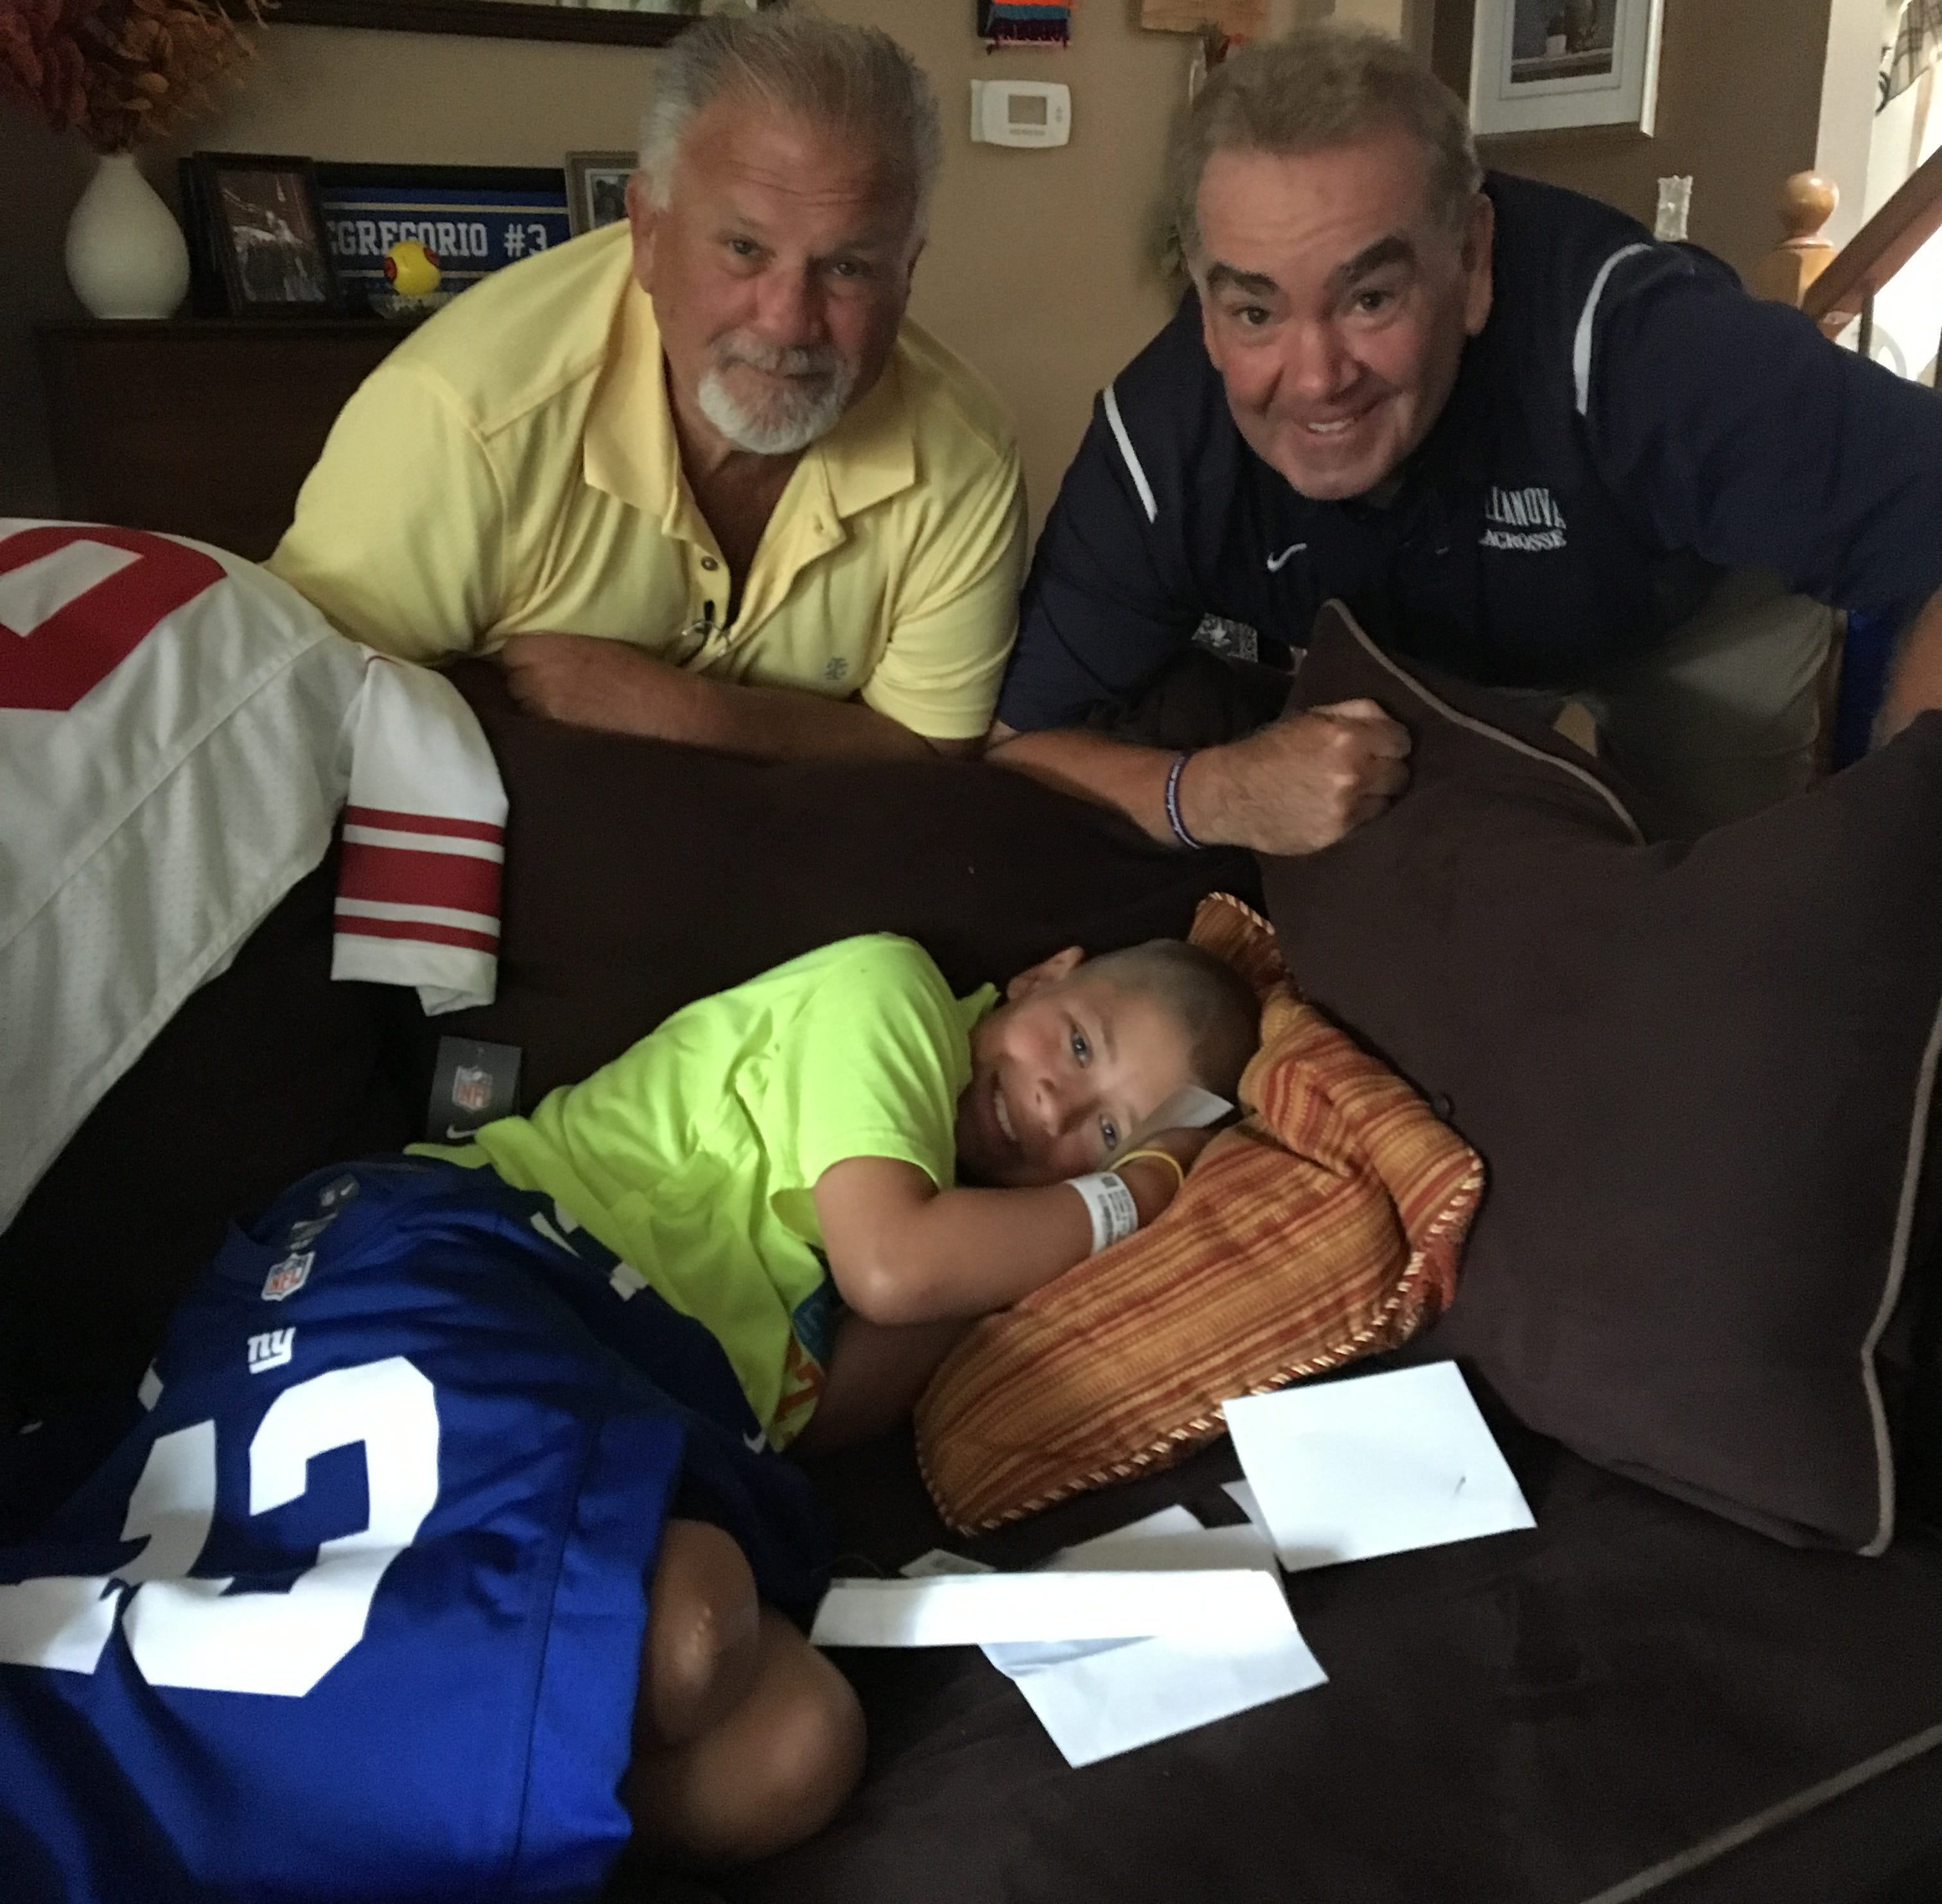 Frances Foundation officials Rocco Flammia and Bob Heugle deliver an Odell Beckham jersey and Giants  tickets to Will DeGregorio.